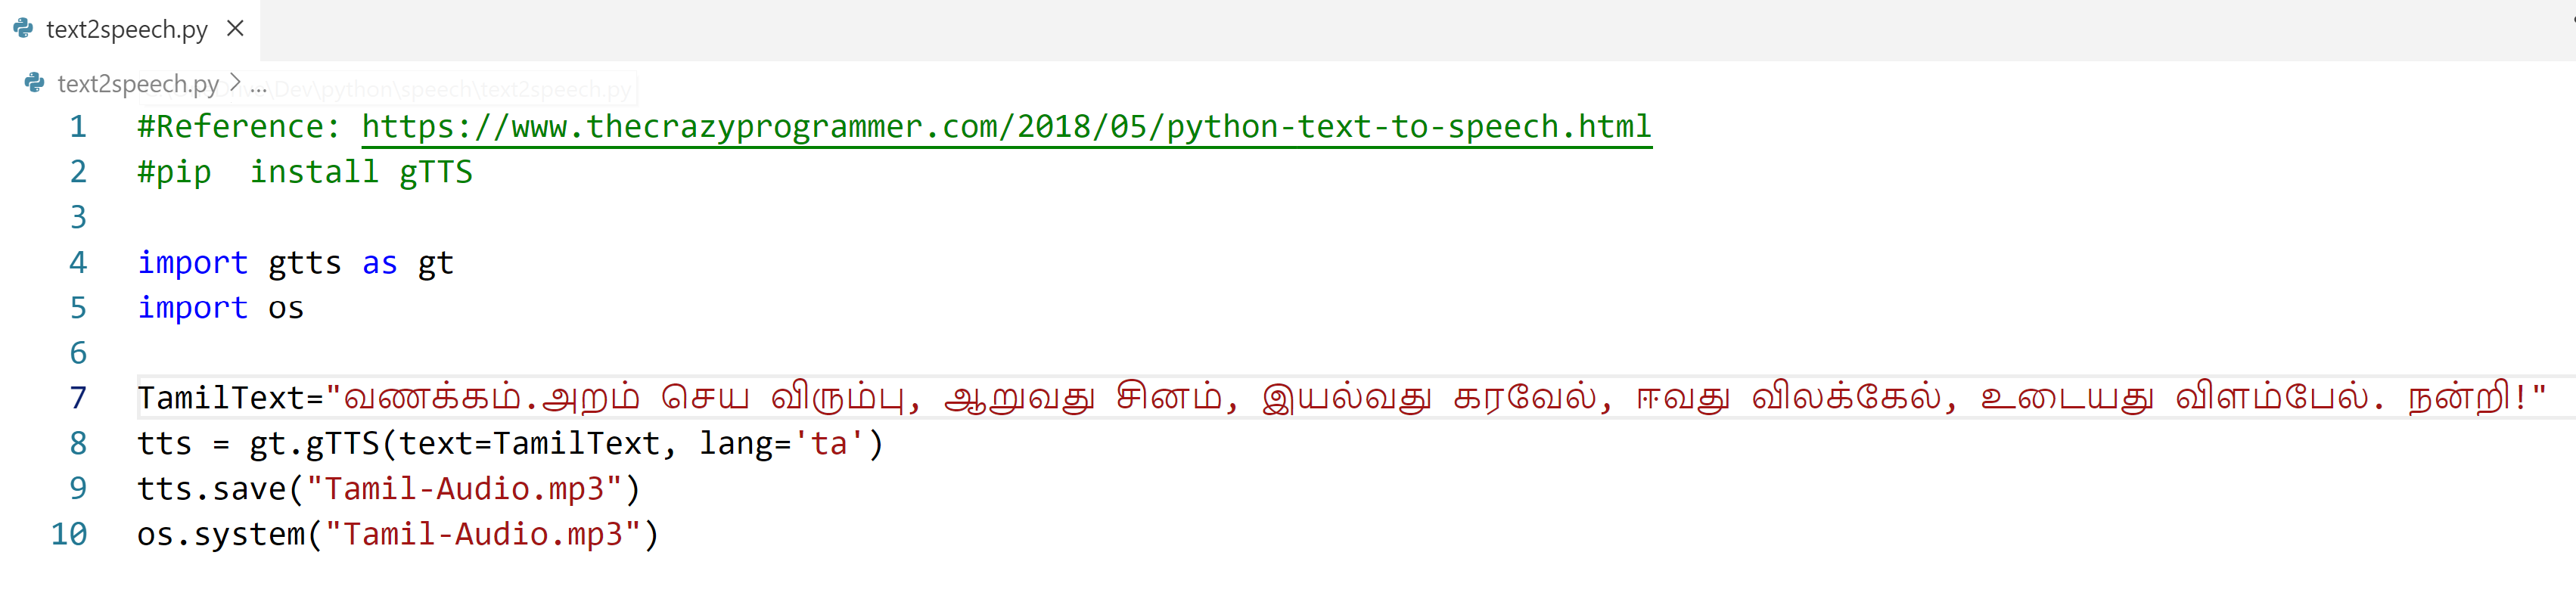 Python code snippets for Speech in Tamil | Venkatarangan